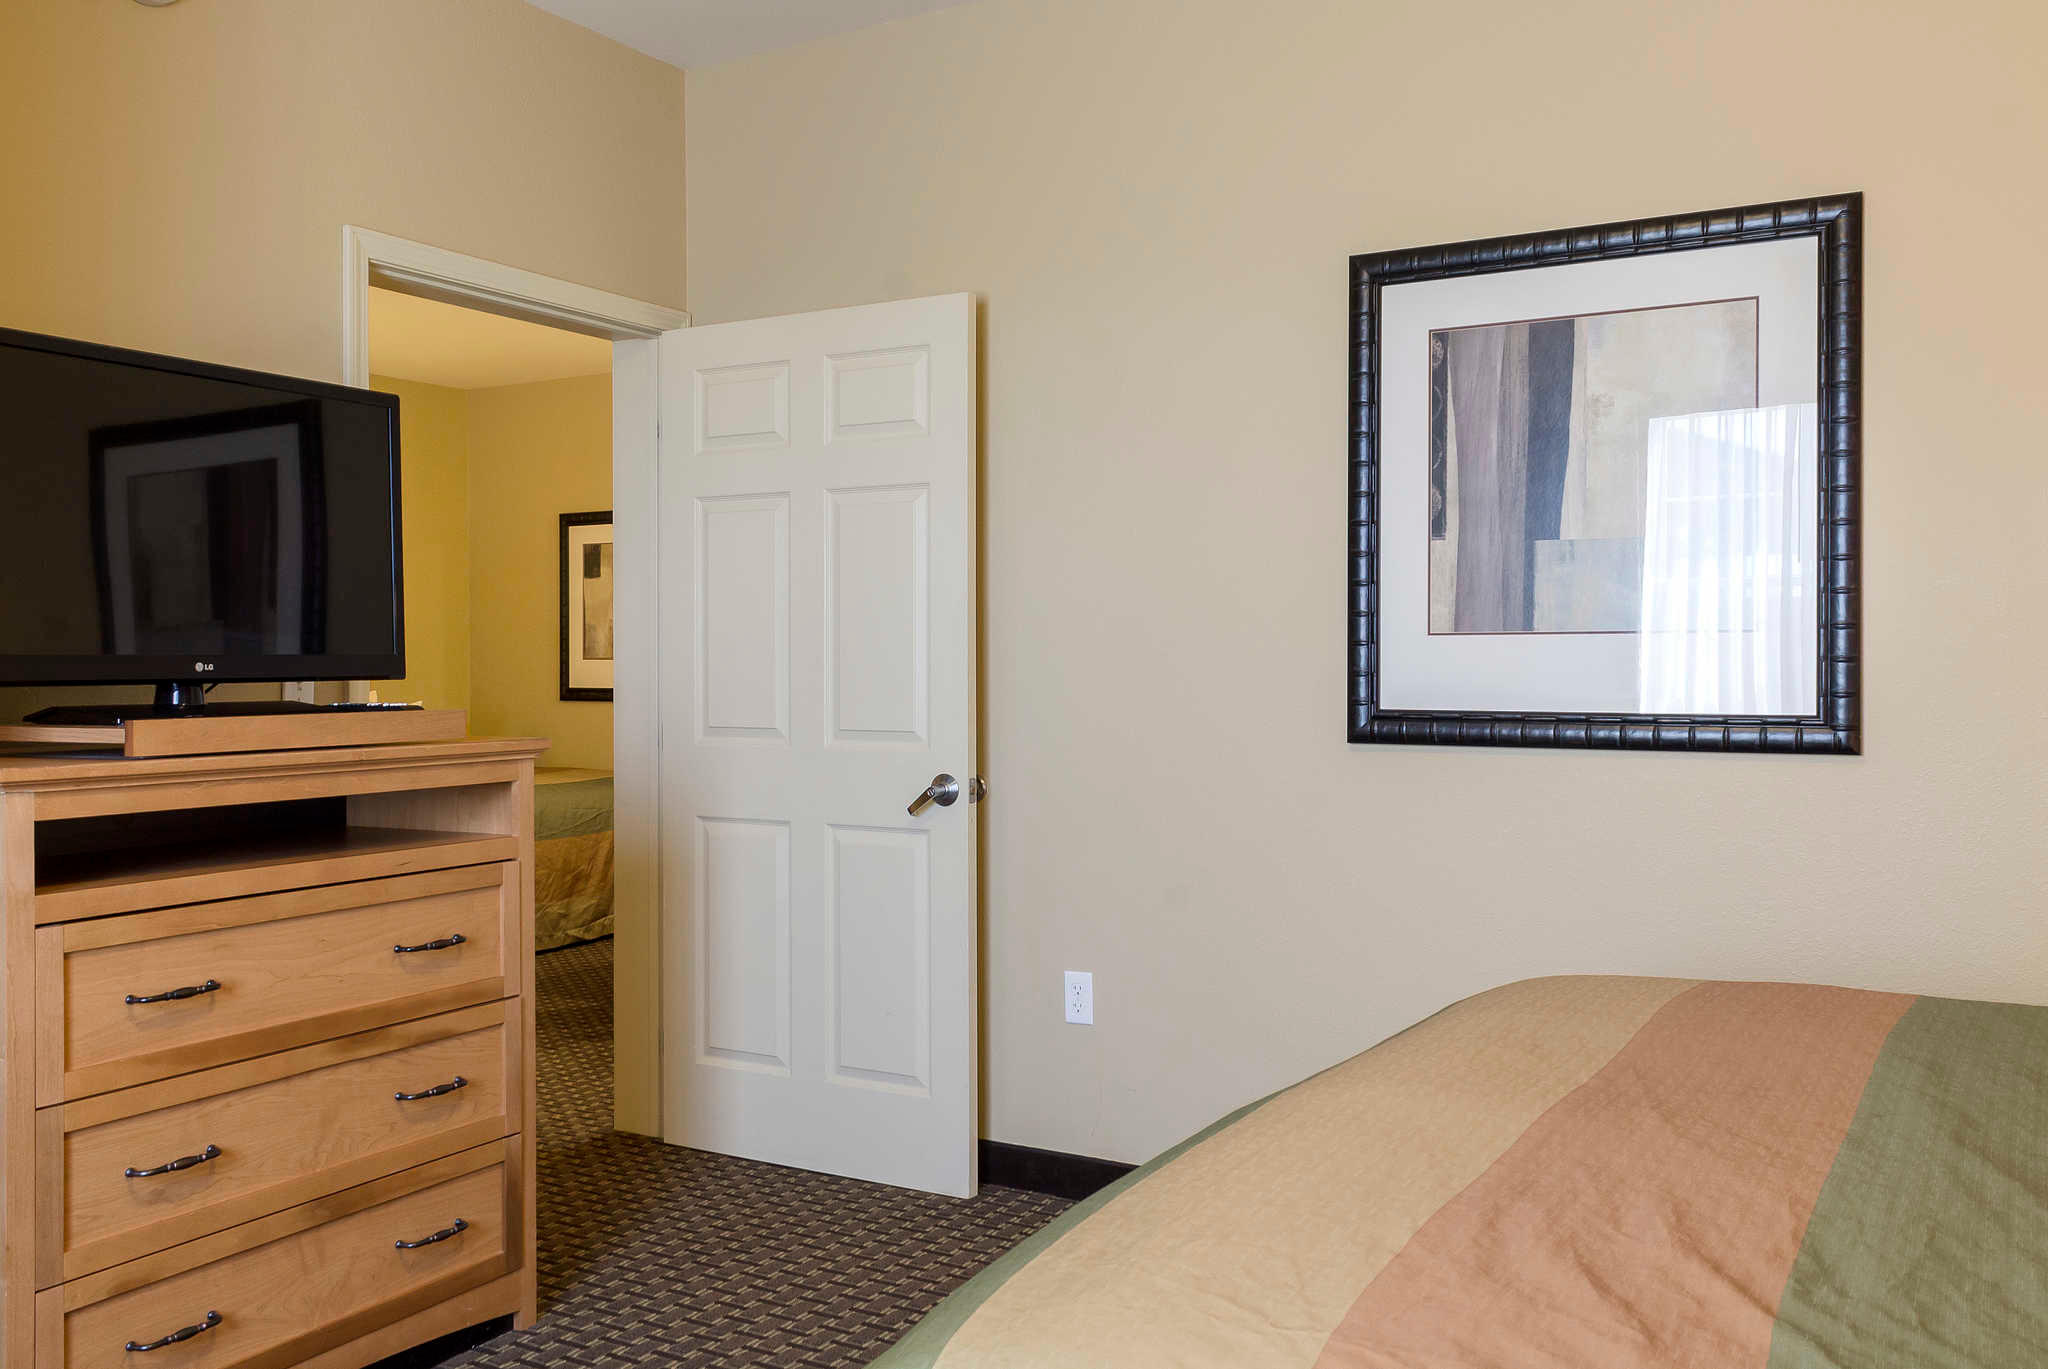 MainStay Suites image 19